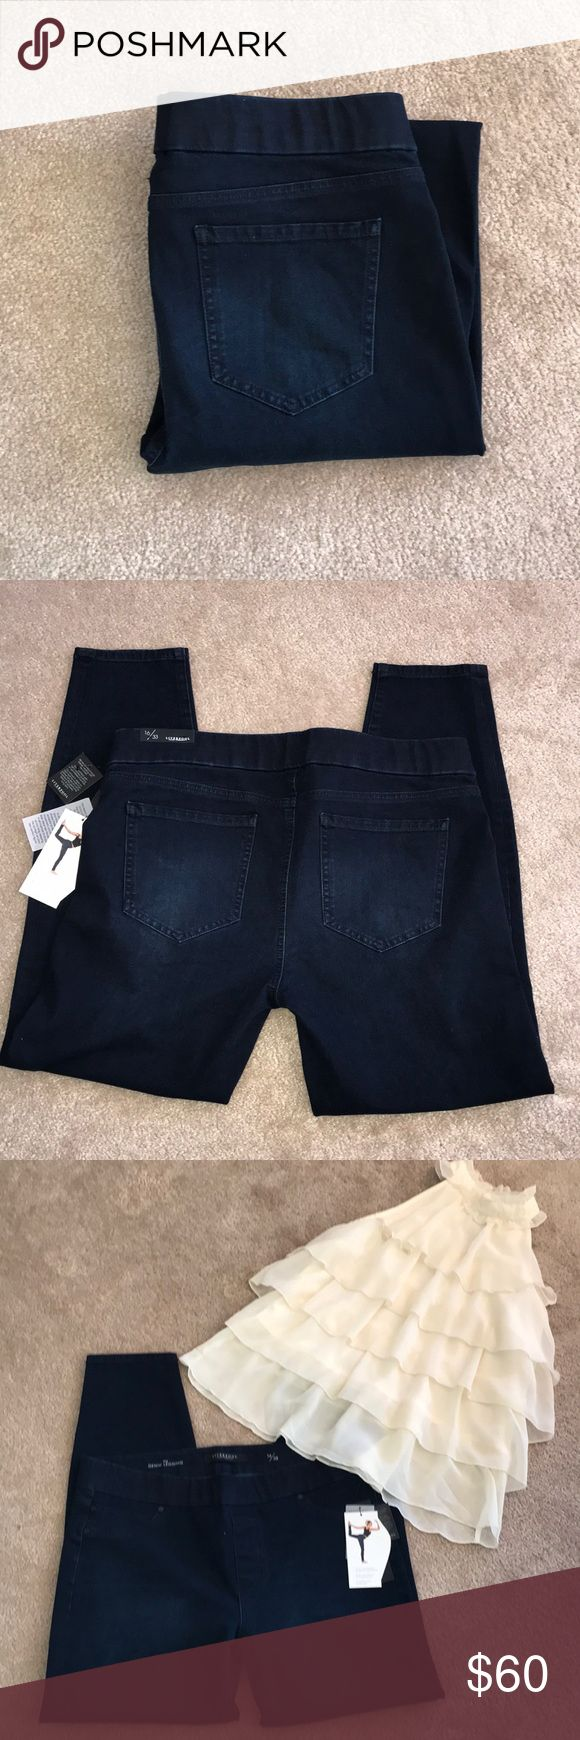 Woman's LIVERPOOL Denim Leggings Woman's LIVERPOOL Denim Leggings  -size 16/33 -New with tags Liverpool Jeans Company Jeans Skinny